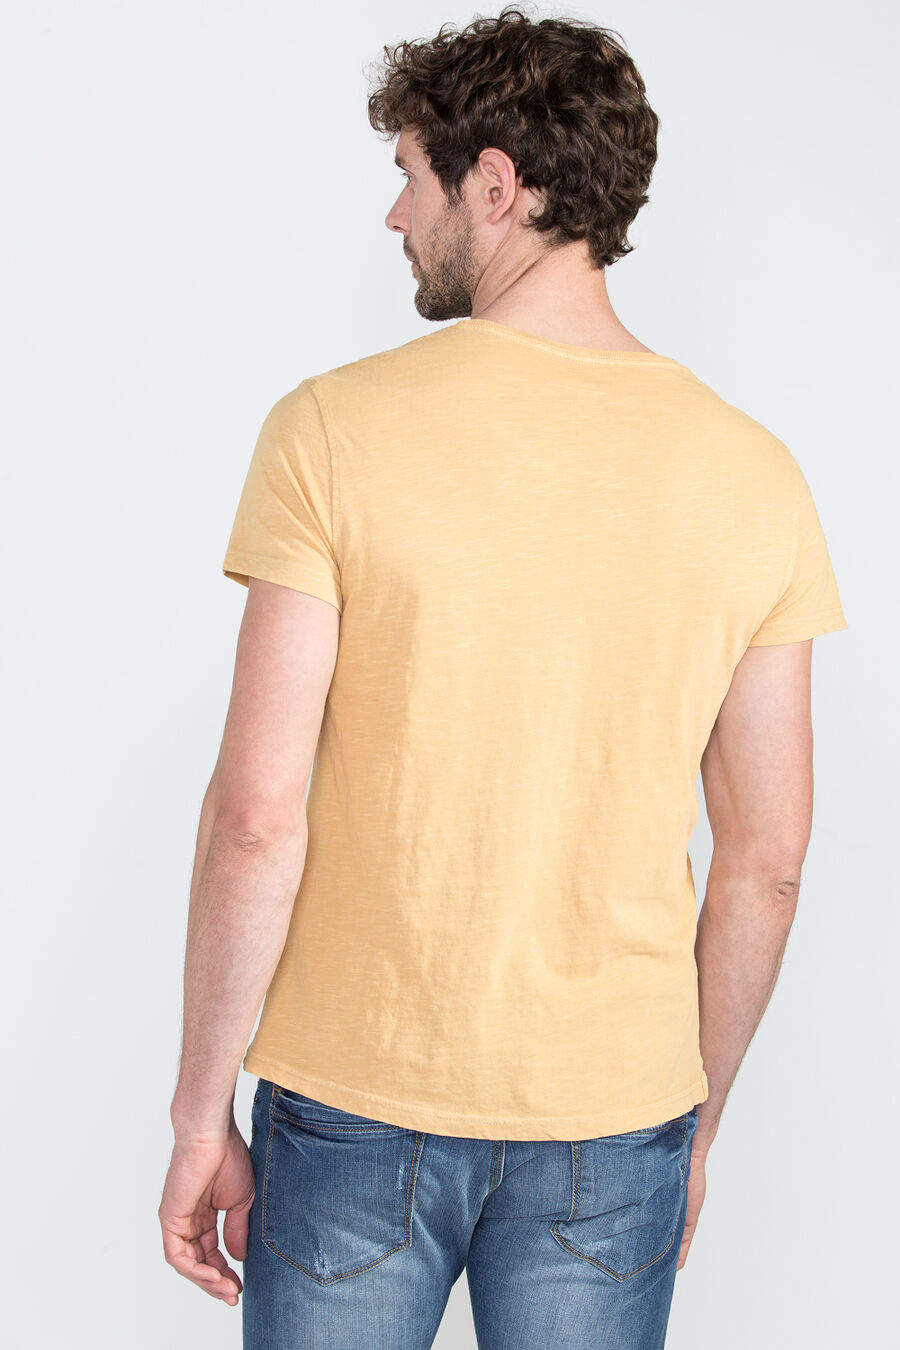 Garment-dyed top